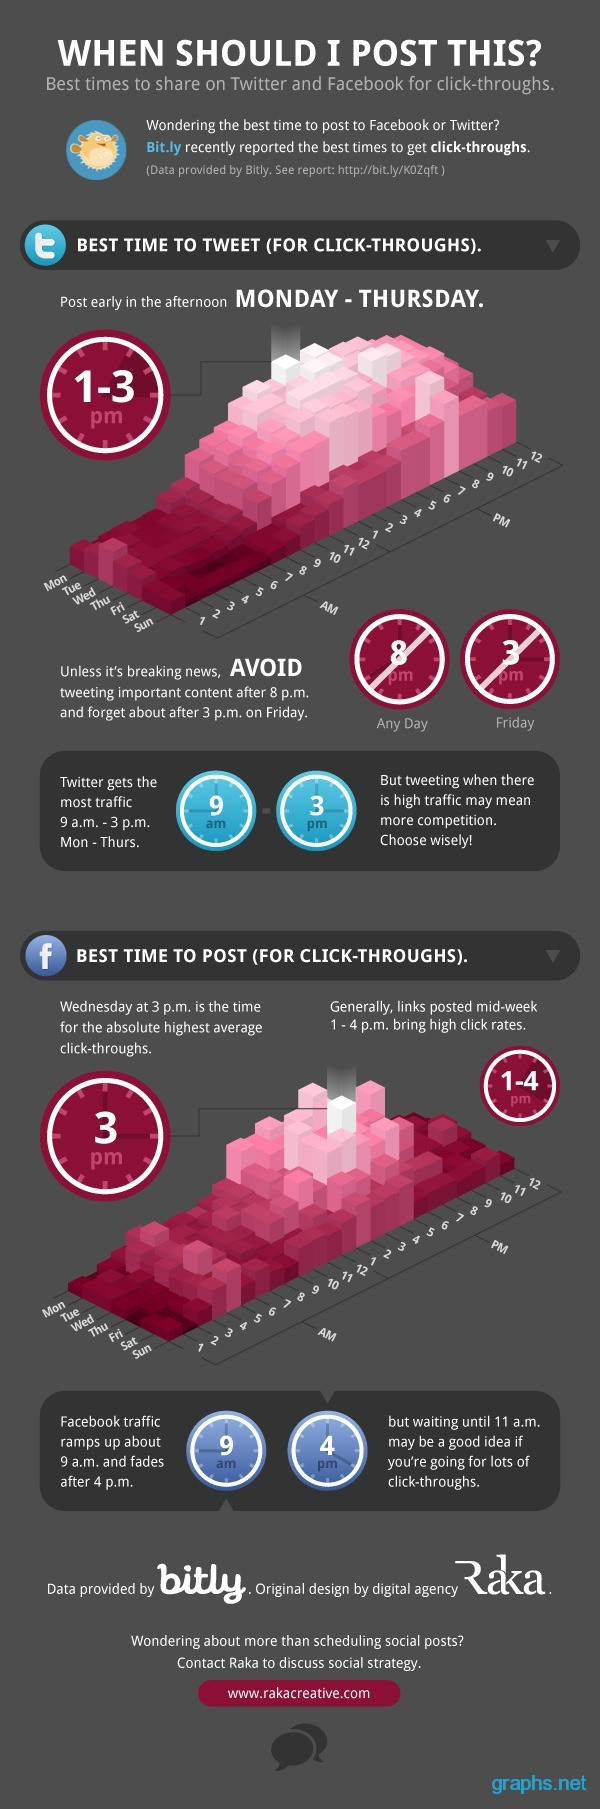 Best Time to Share on Facebook and Twitter